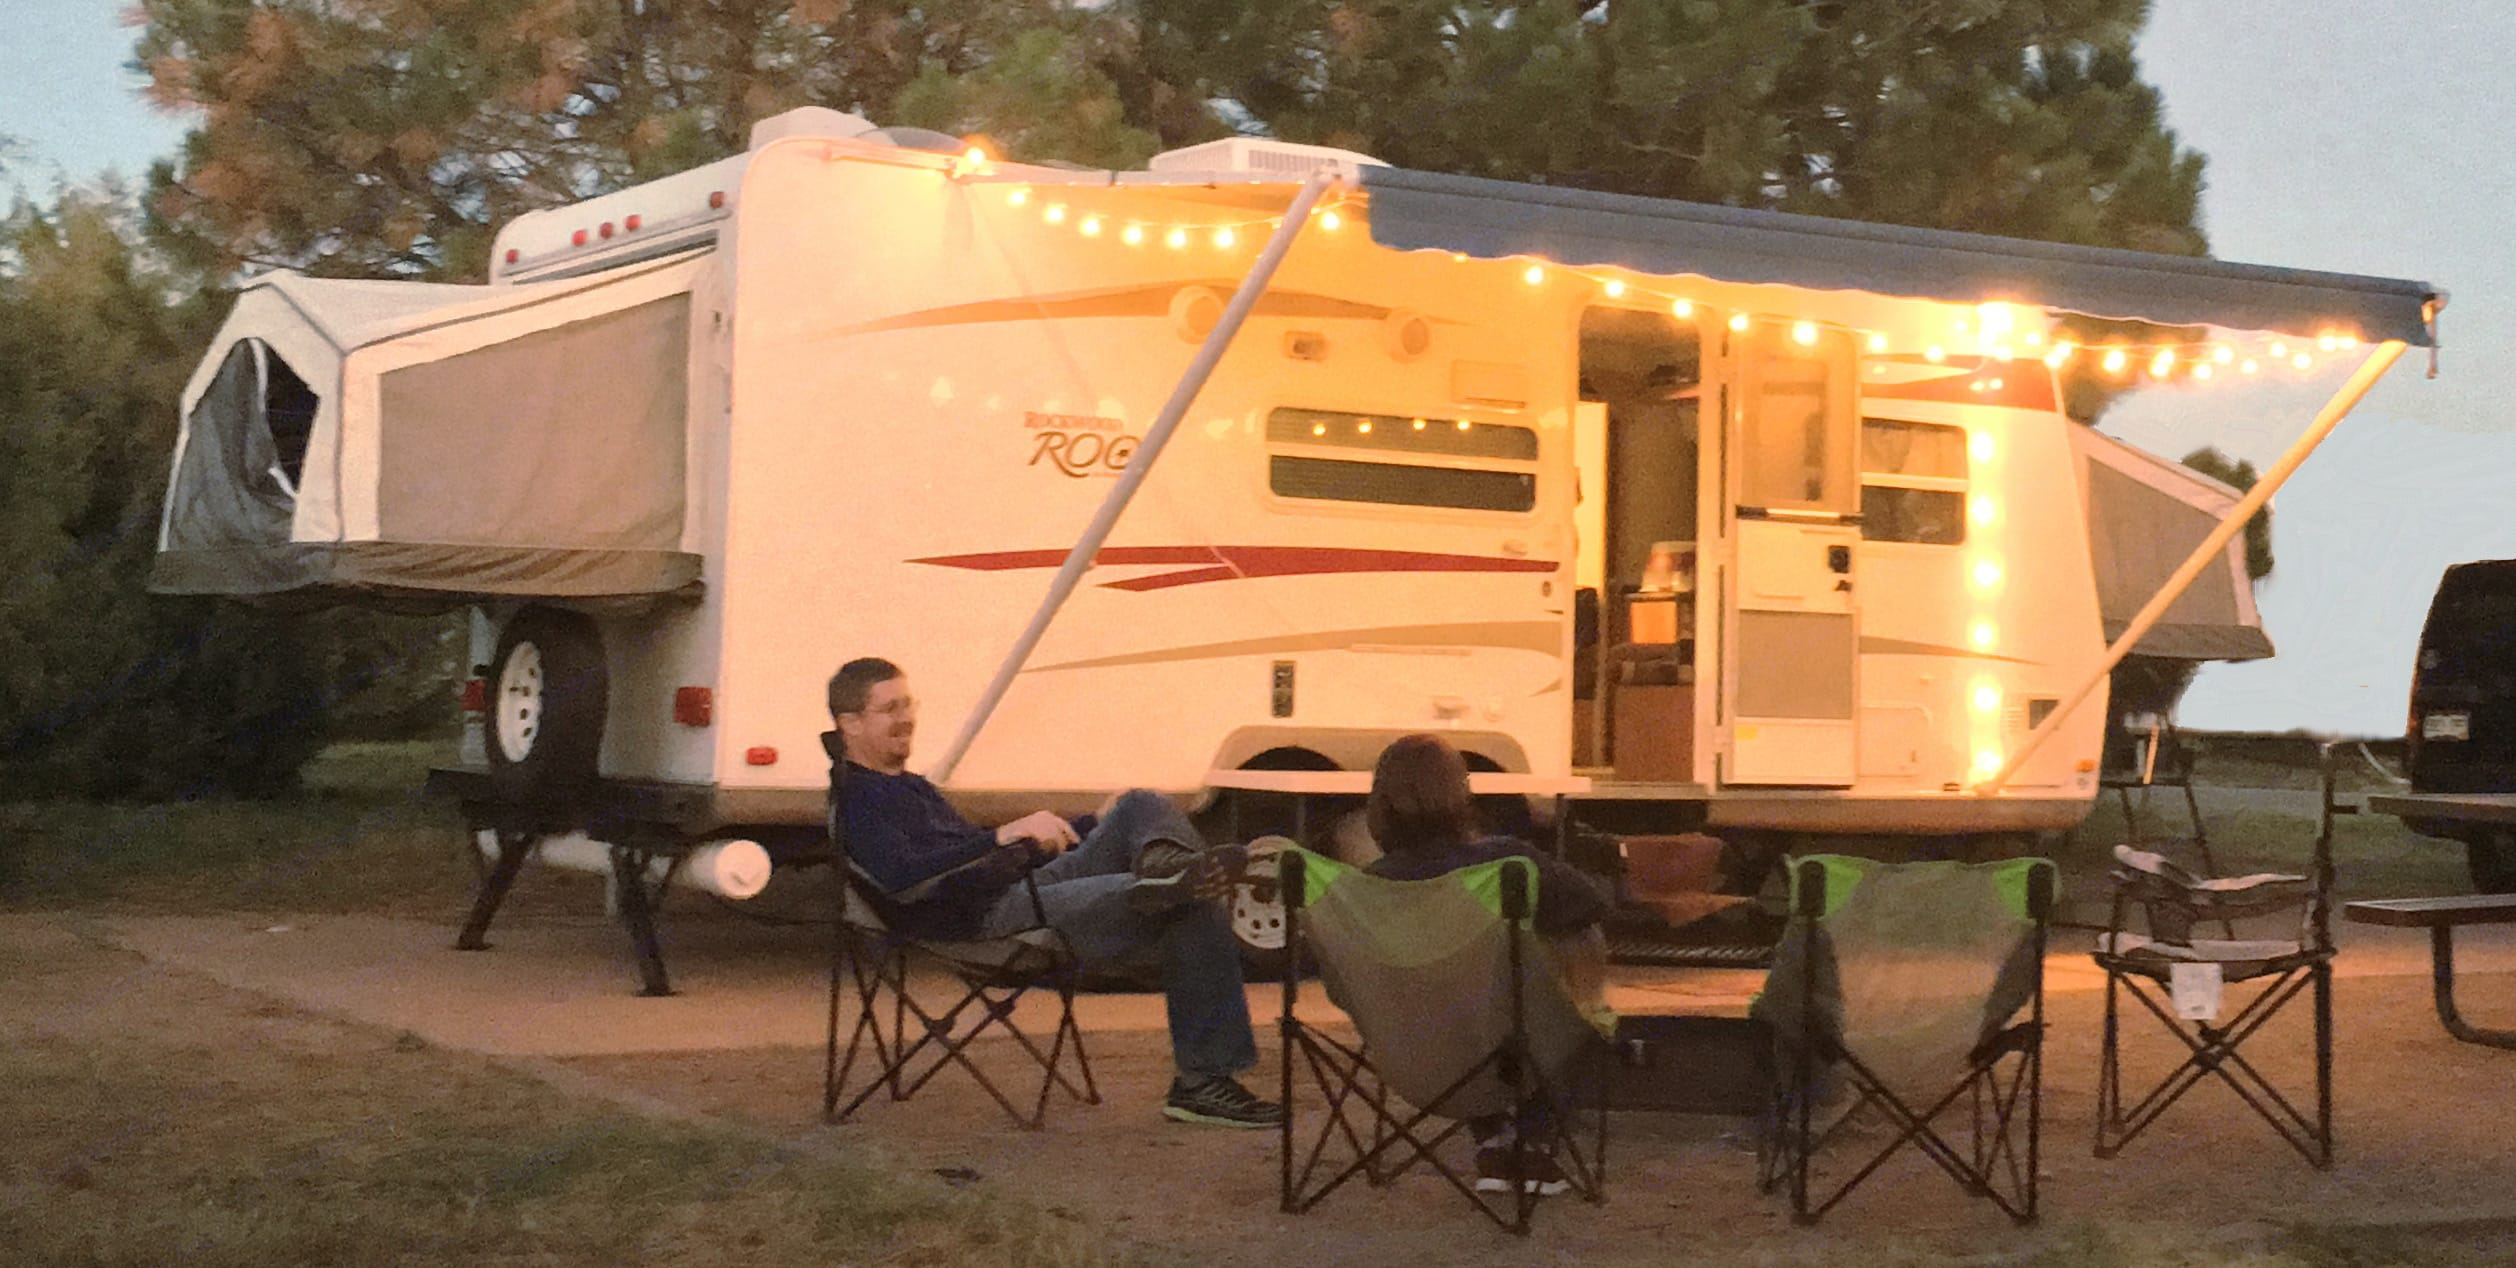 With the awning out and lights strung up, feels very homey!. Rockwood Roo 233S 2010